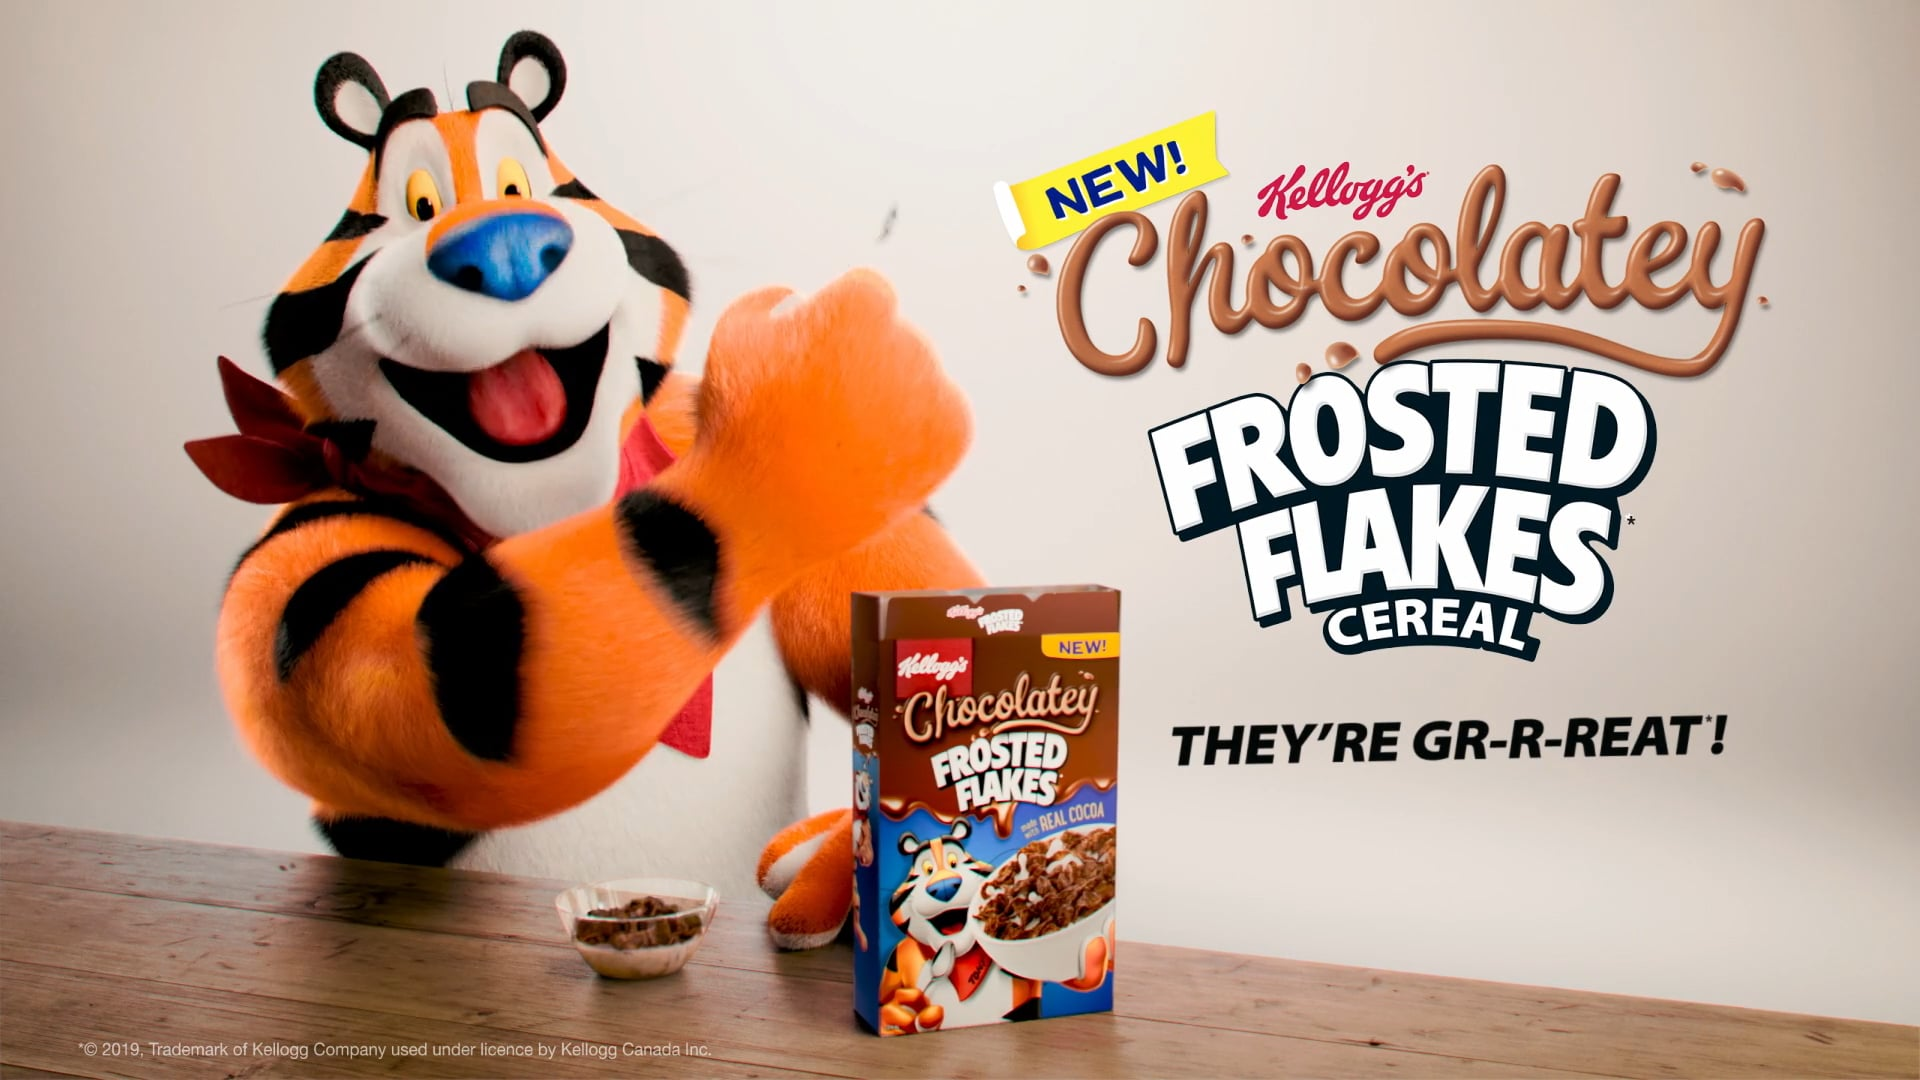 Kellogg's Frosted Flakes - Chocolatey